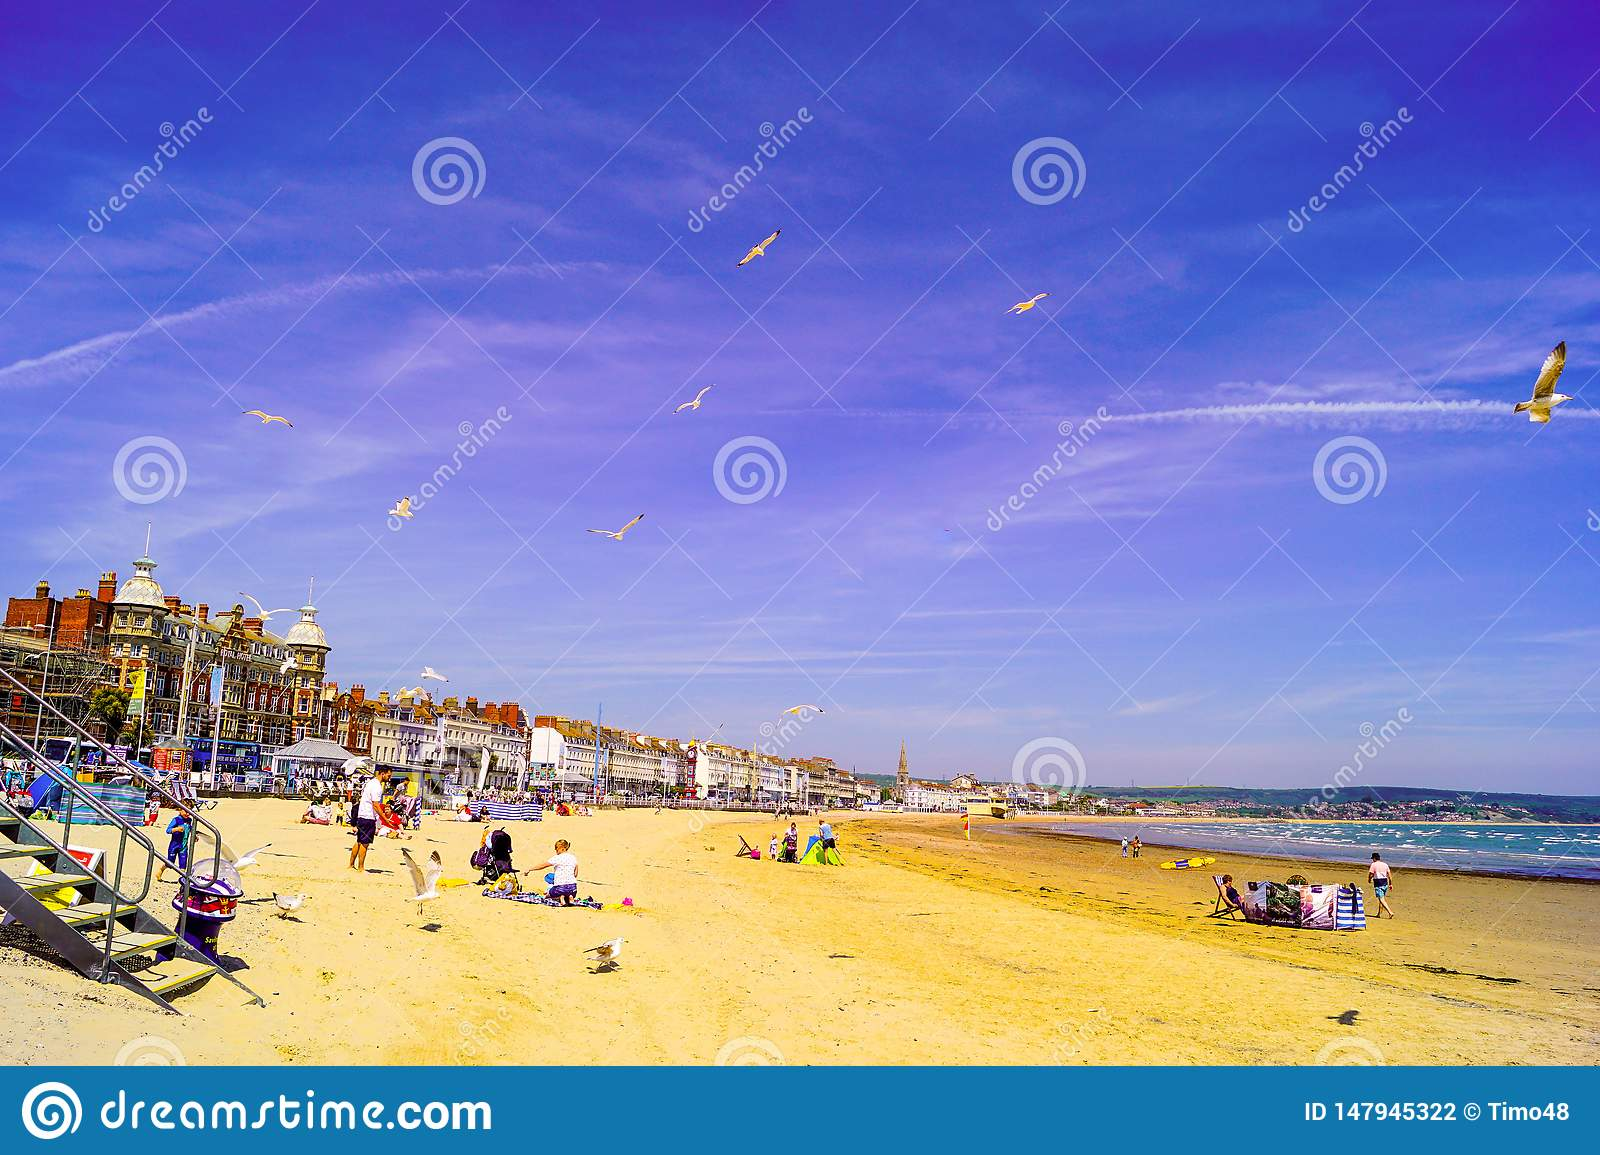 Weymouth beach busy with families enjoying thier holiday